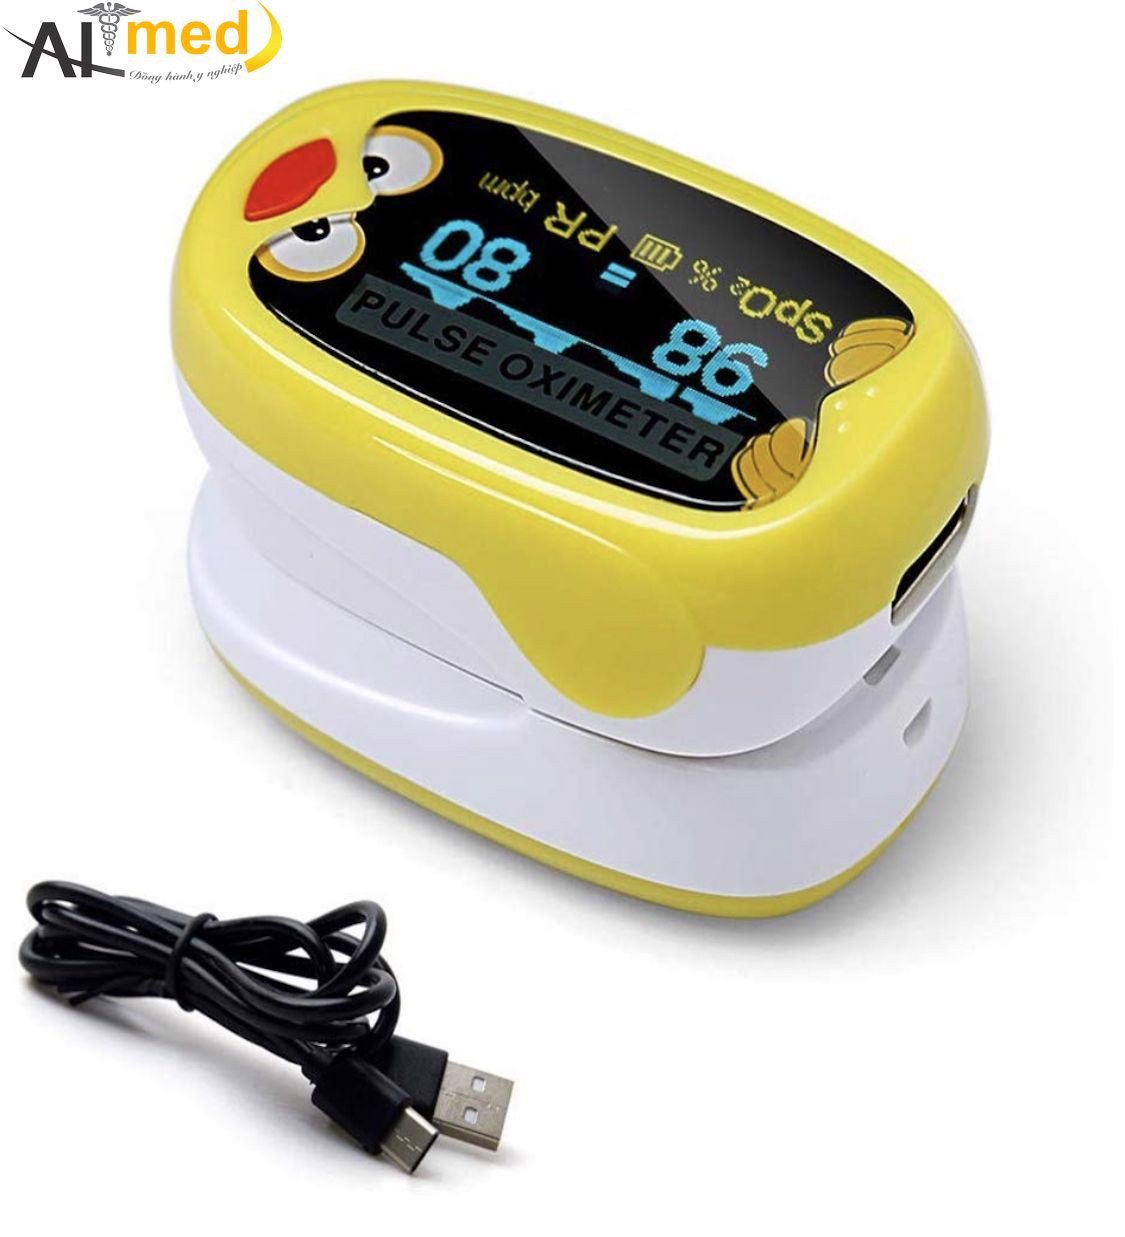 Fingertip Pulse Oximeter, Portable SpO2 Blood Oxygen Monitor for 1-12 Years  Old Children